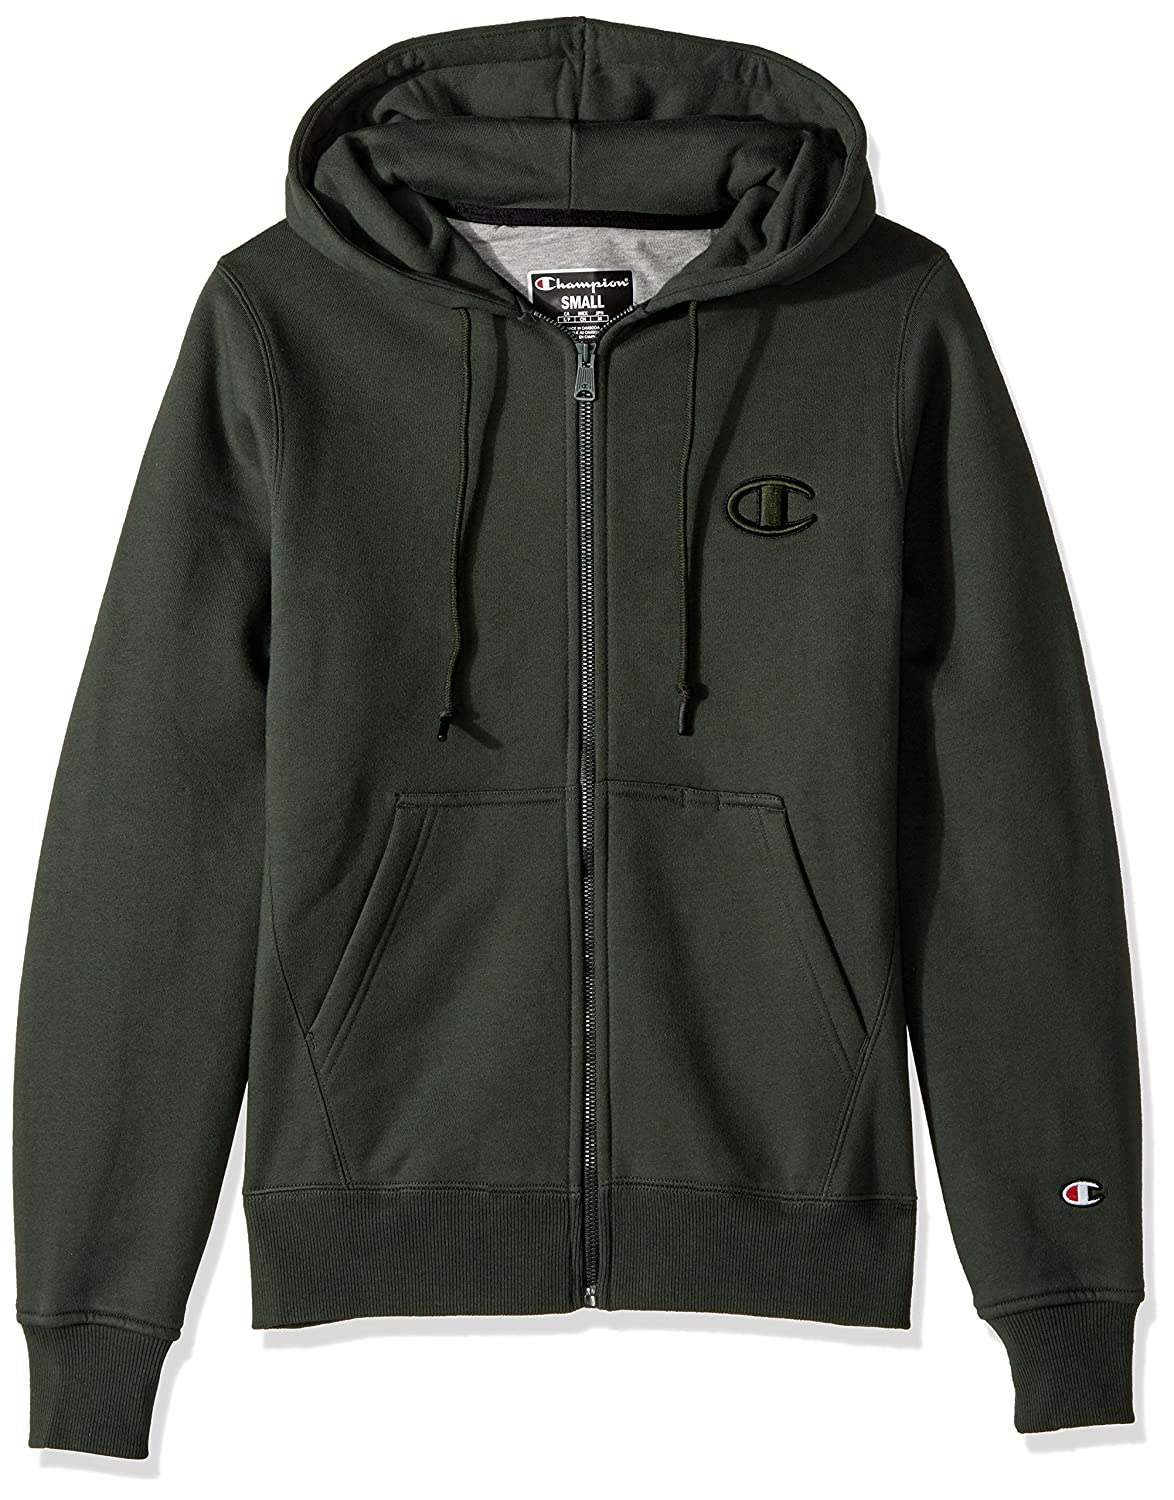 Champion LIFE OUTERWEAR メンズ B074PF1VJ3 M|Forest Grove Forest Grove M